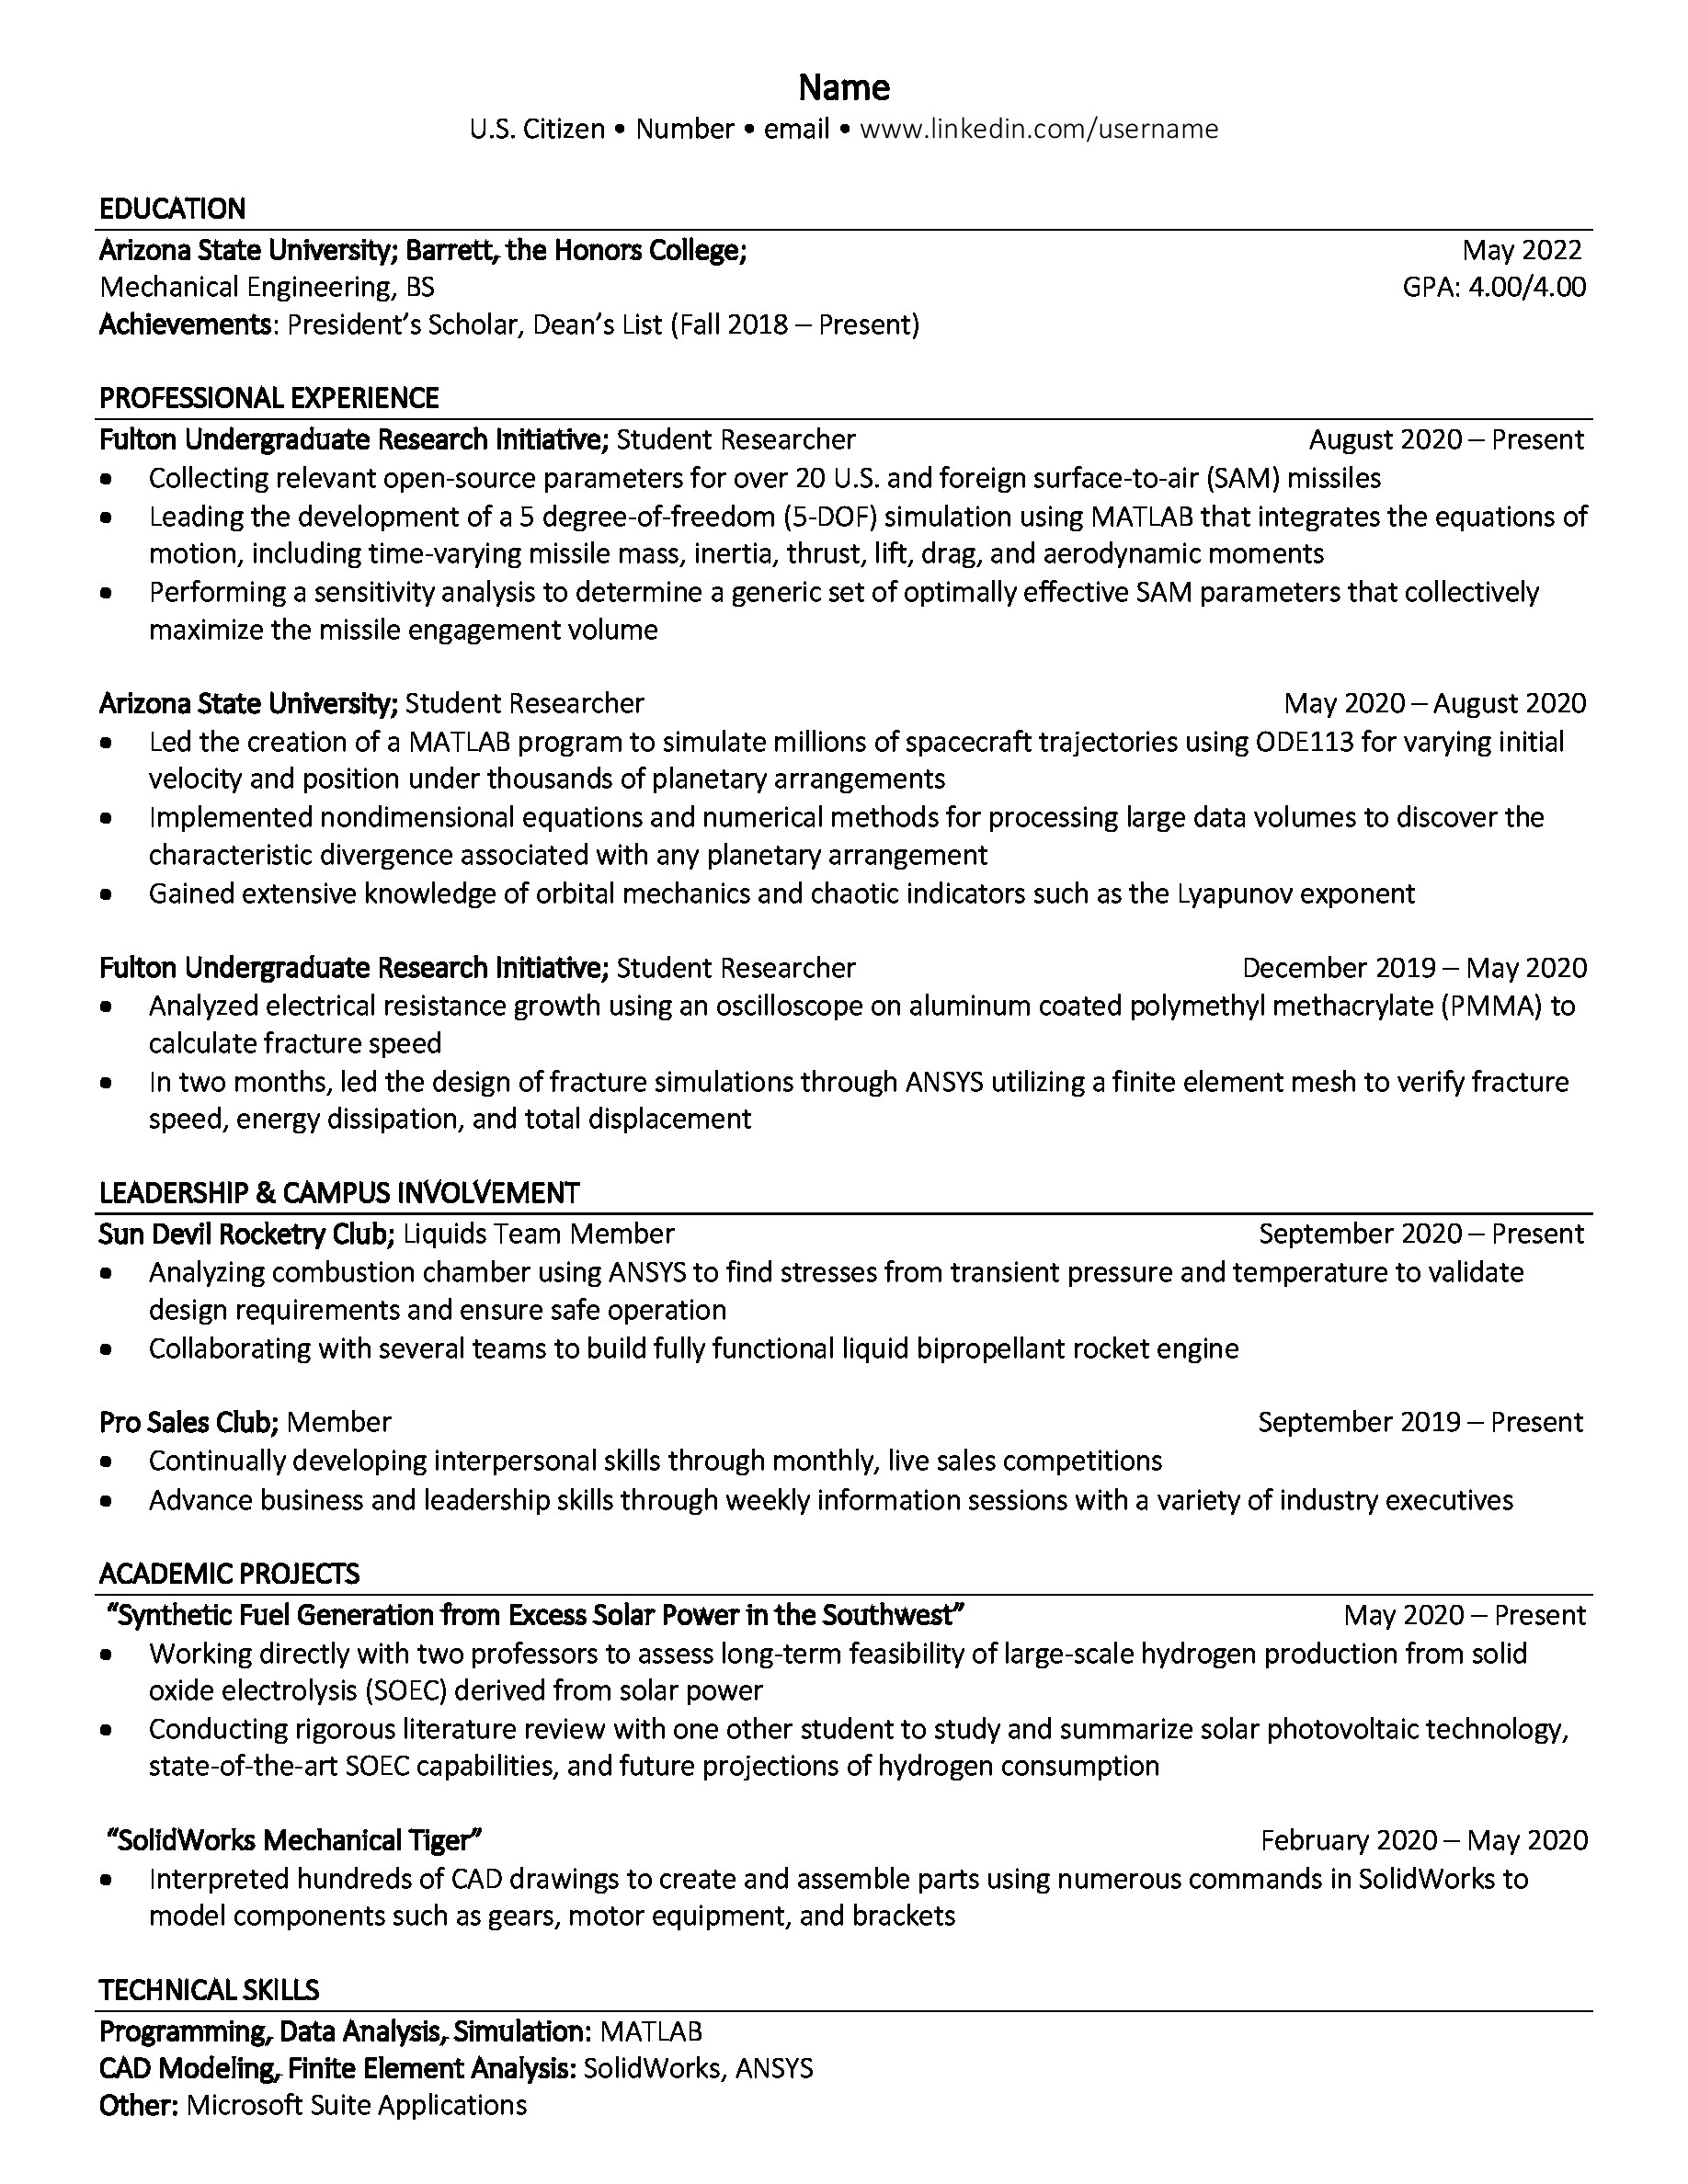 resume reddit edit imgbb programming projects for patient care advocate accounts payable Resume Programming Projects For Resume Reddit